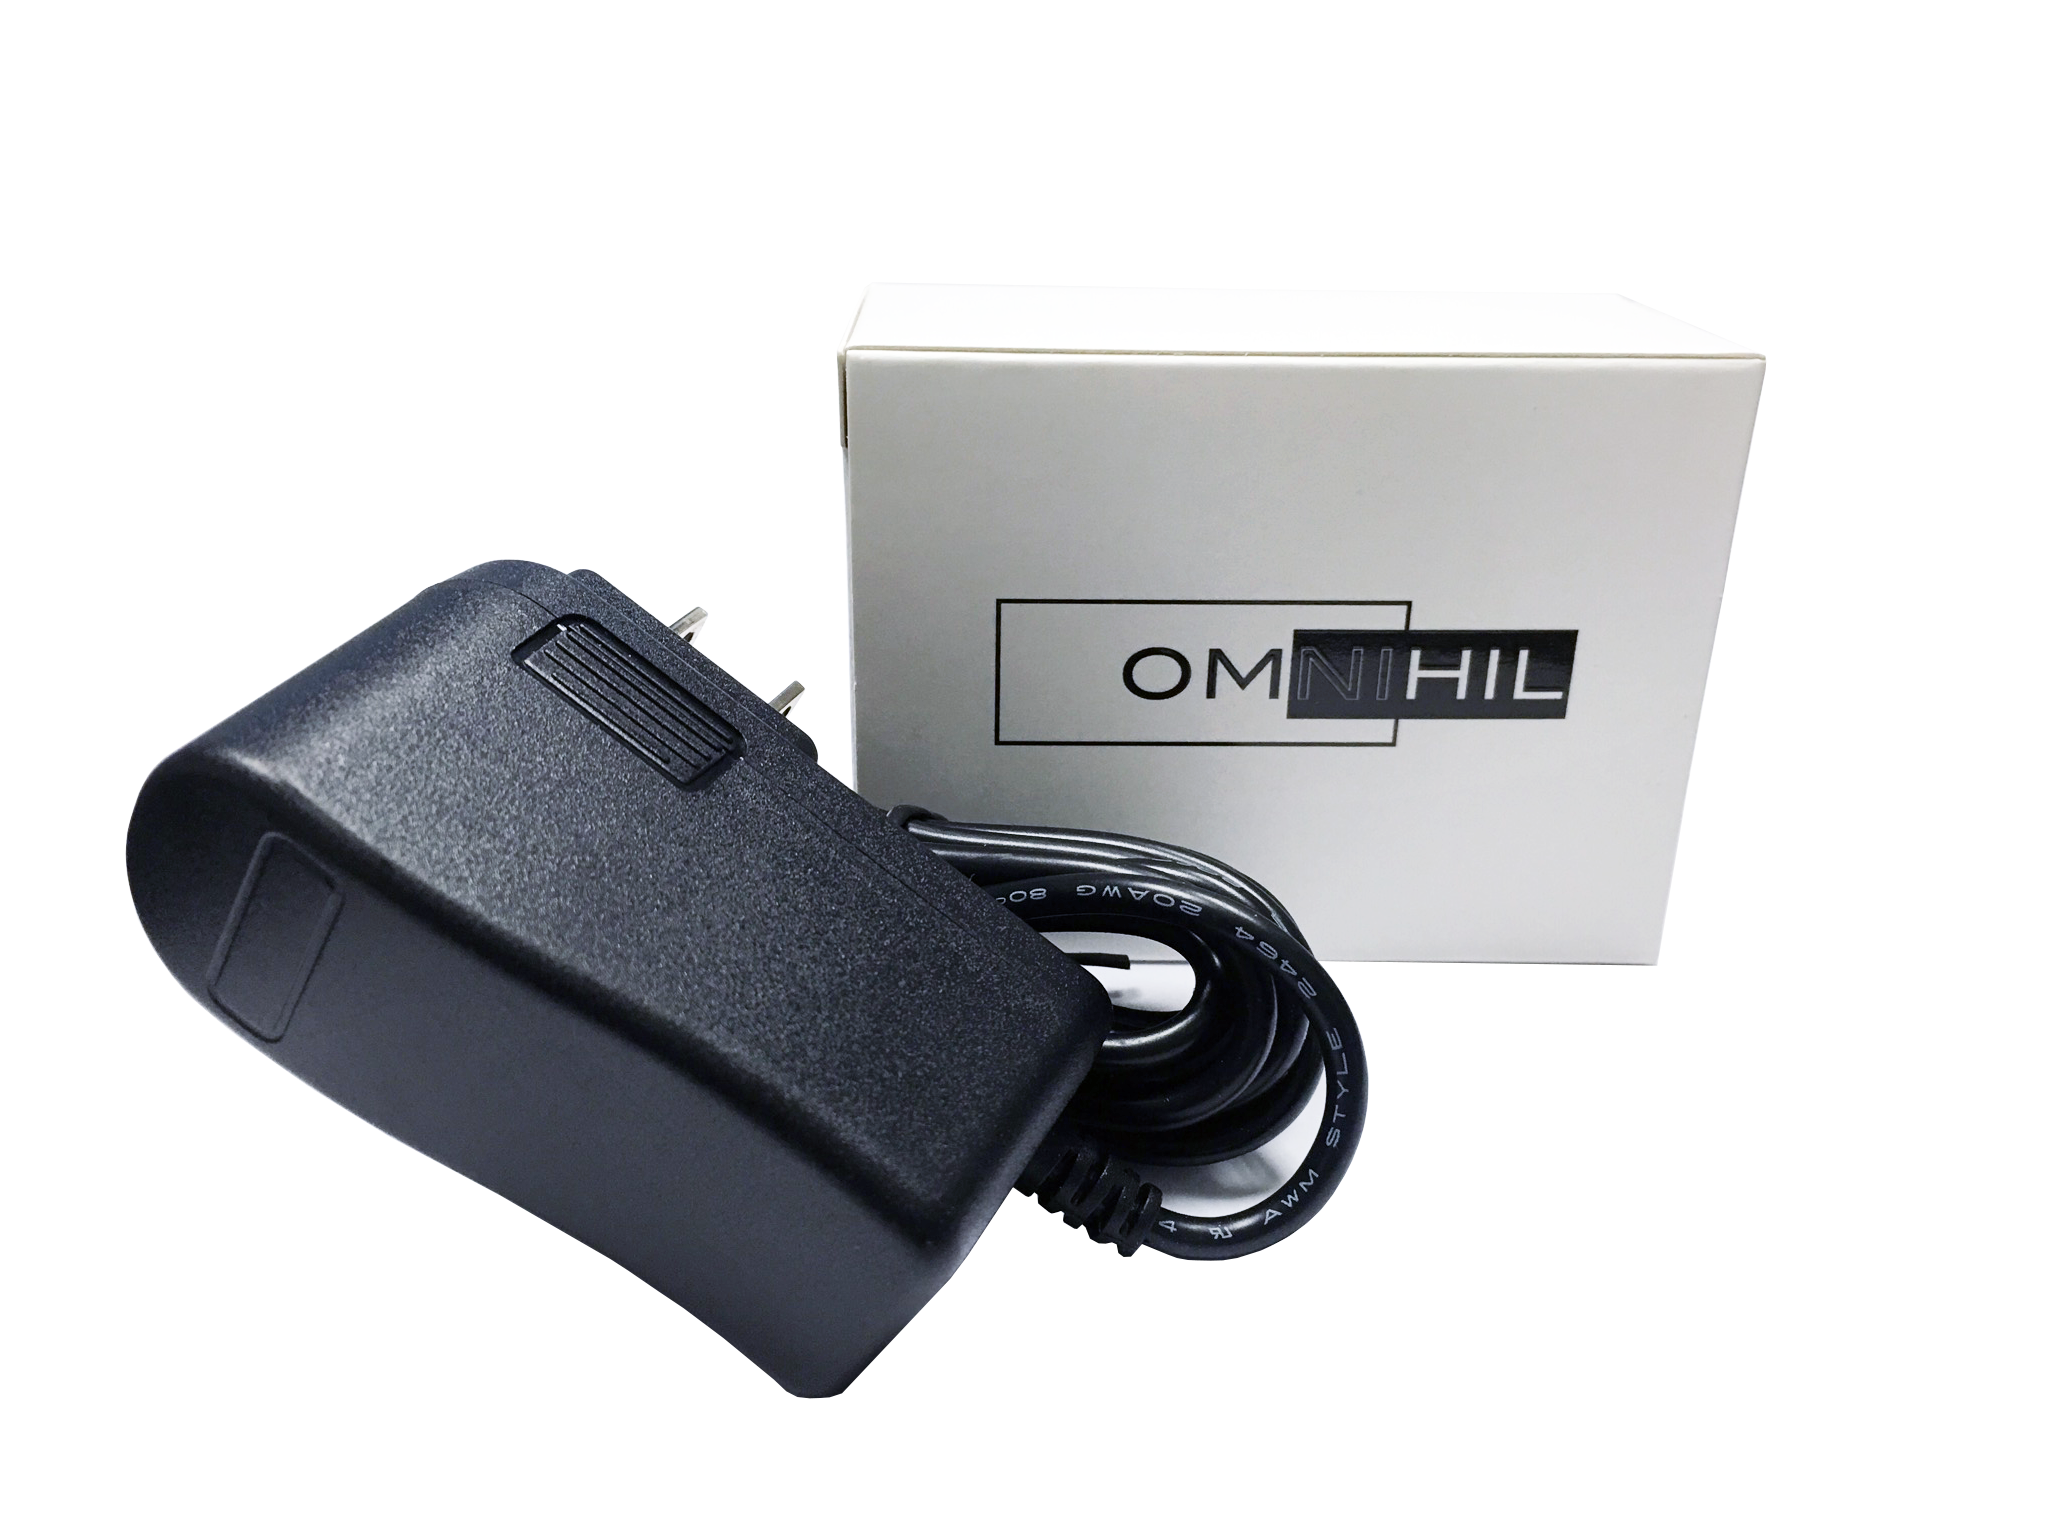 OMNIHIL AC DC Adapter Adaptor for Vestax VCI-400 DJ USB MIDI Controller Audio Interface... by OMNIHIL